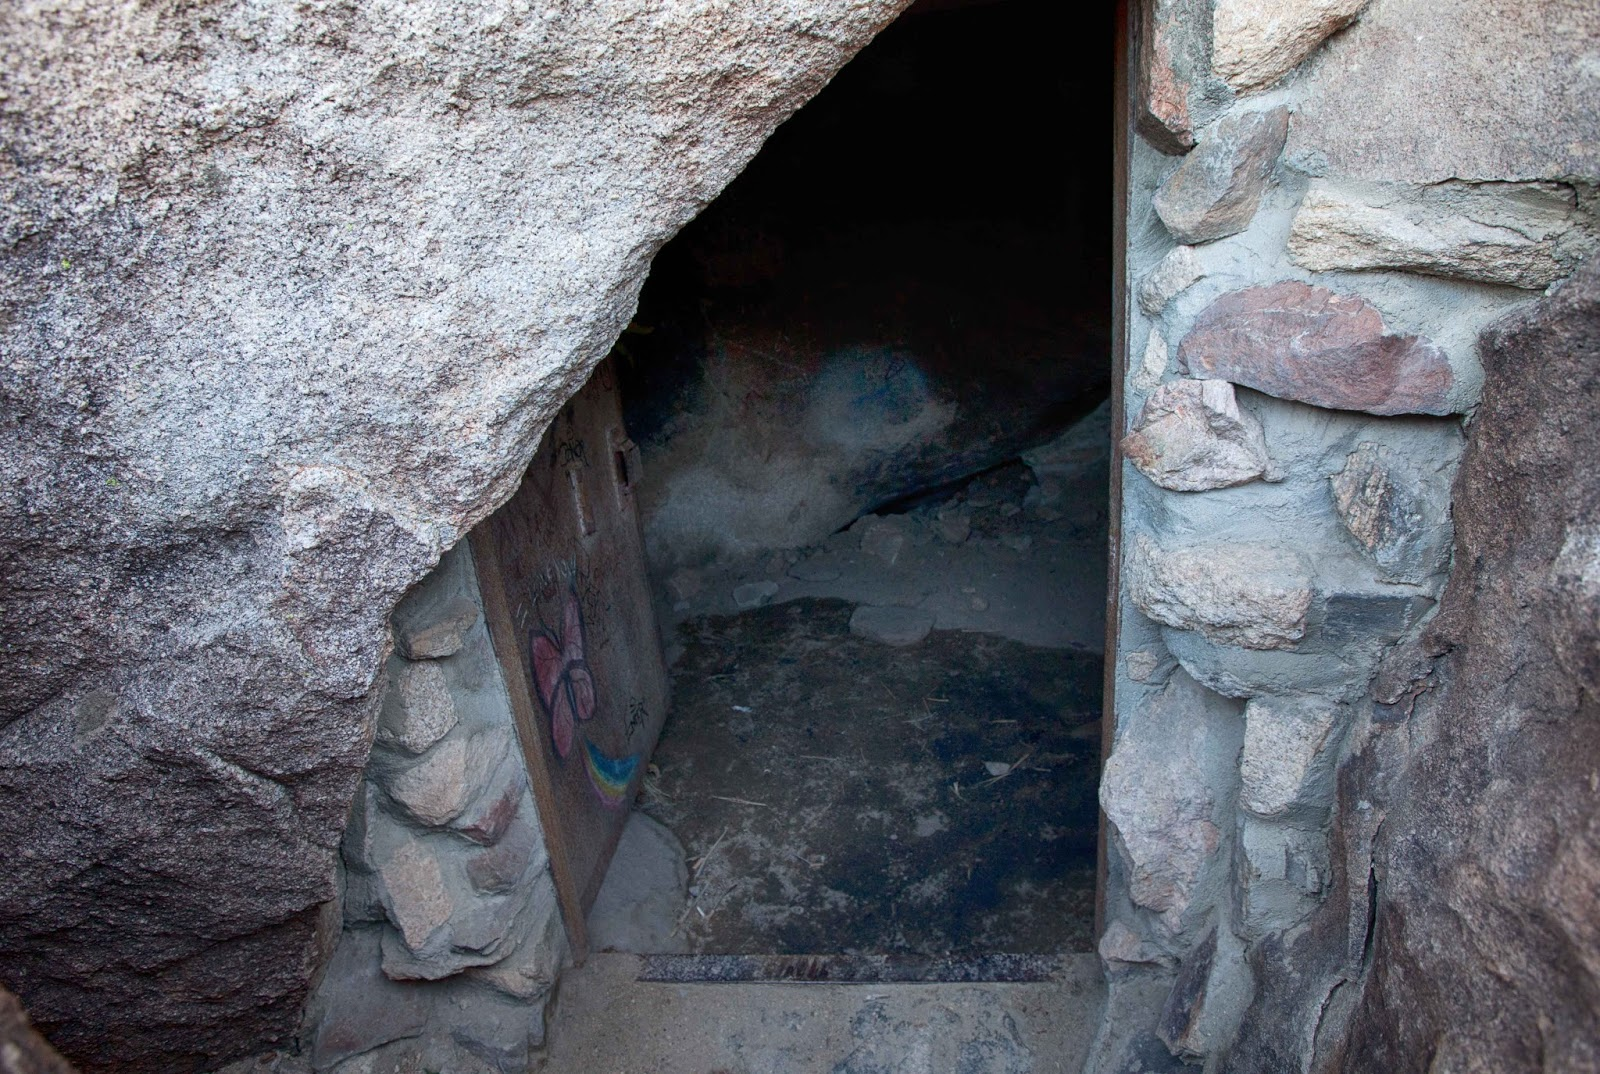 Superb ... The The Rocks Guarding The Entrance, You Can See Rock And Mortar Steps  And The Heavy Iron Door. Bill Keys Put A Lot Of Work Into Building This Cave !!